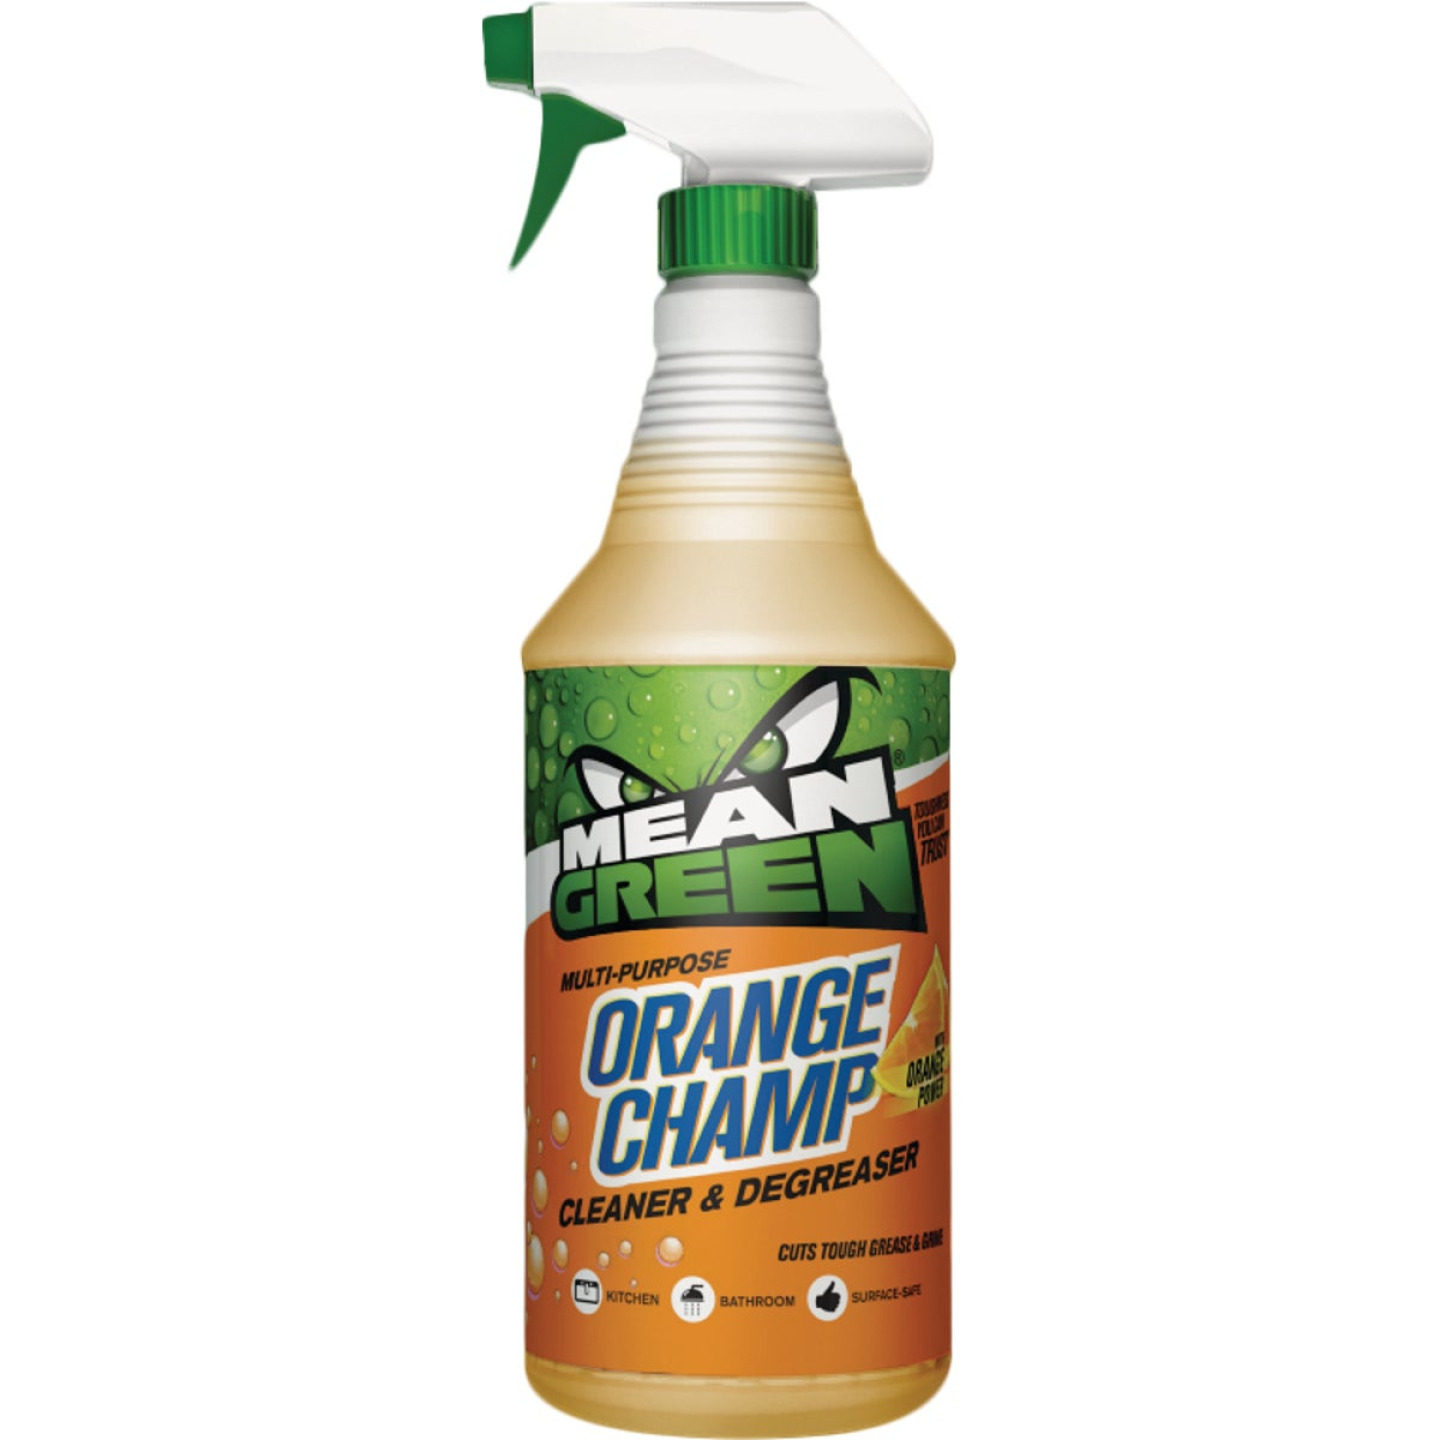 Mean Green 32 Oz. Orange Champ Multi-Purpose Cleaner & Degreaser Image 1